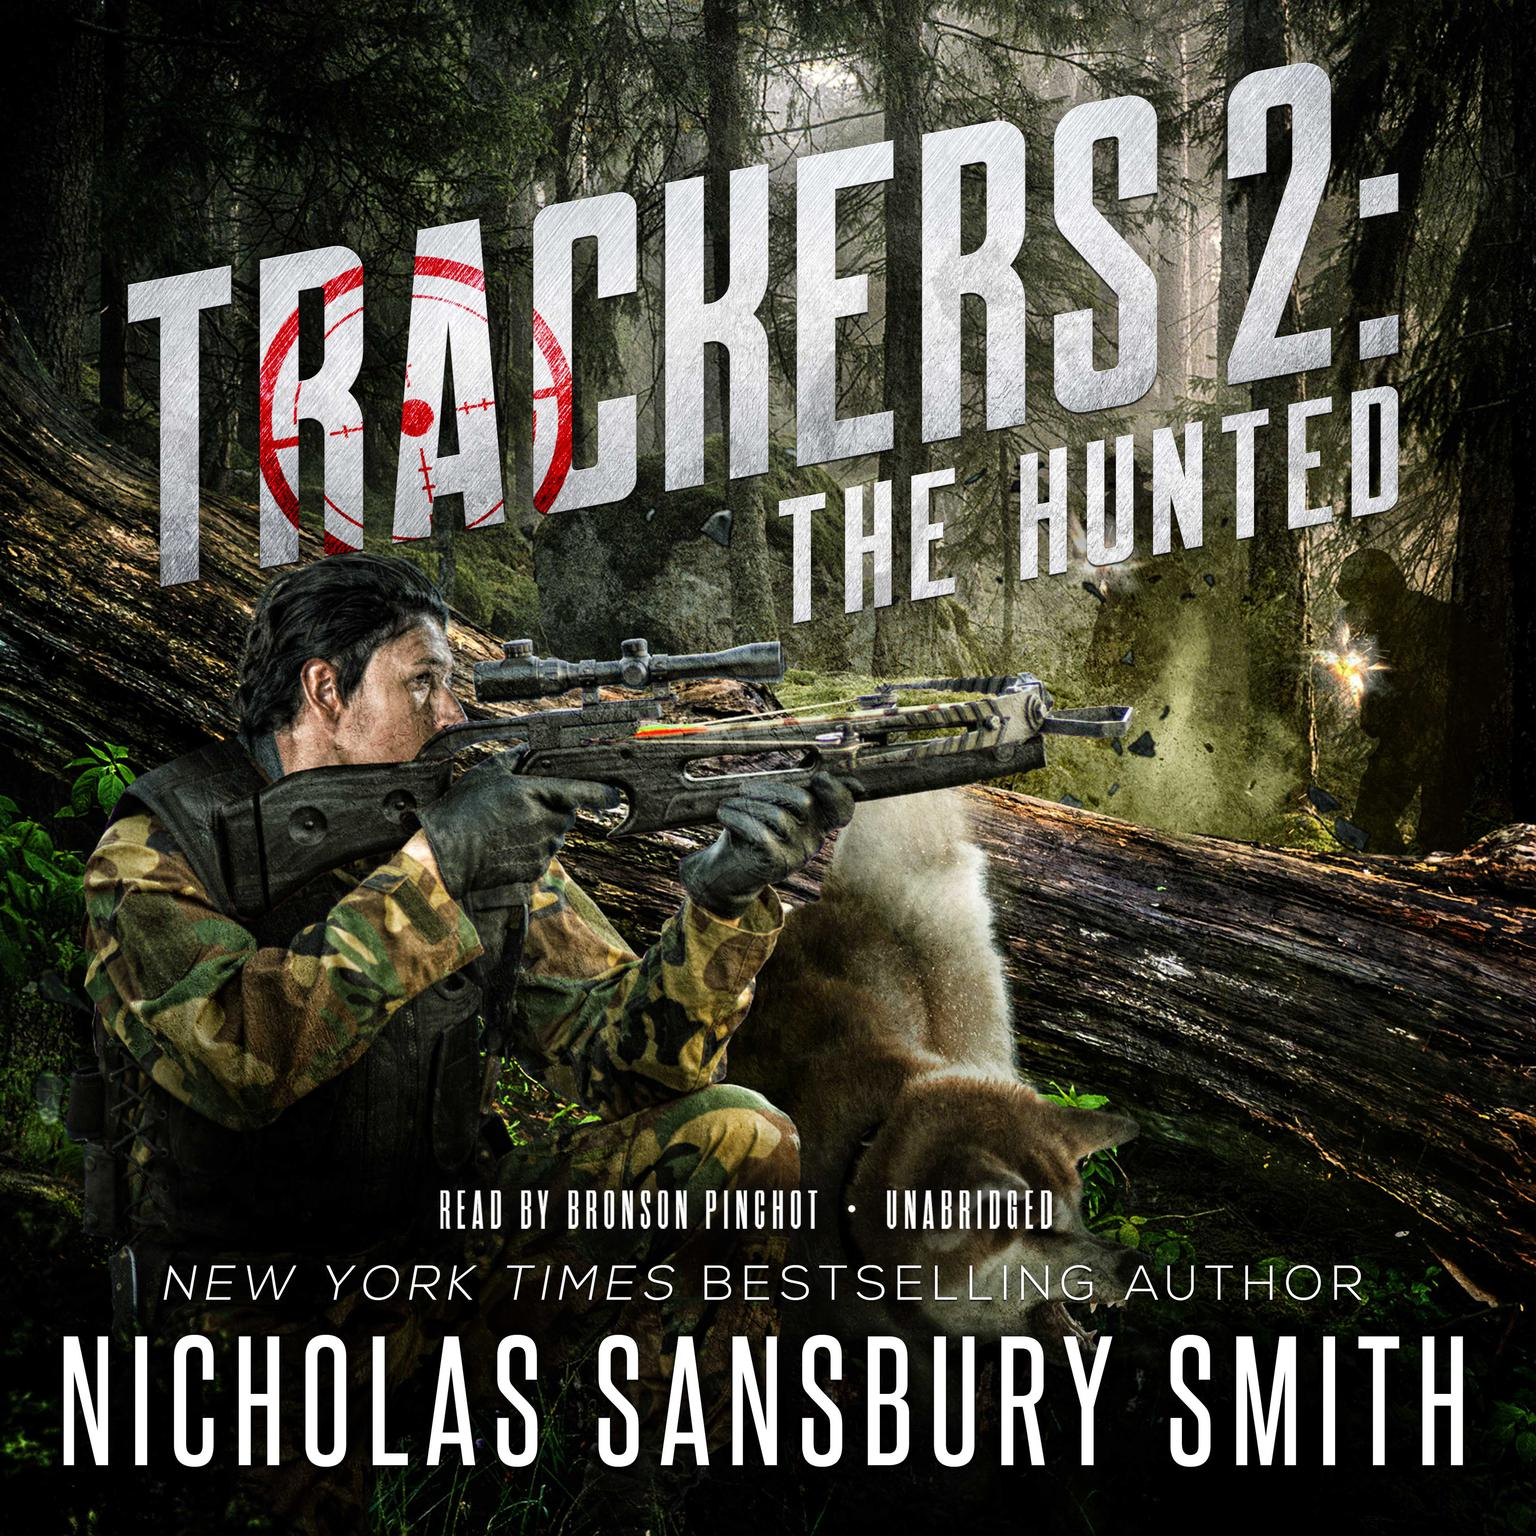 Printable Trackers 2: The Hunted Audiobook Cover Art